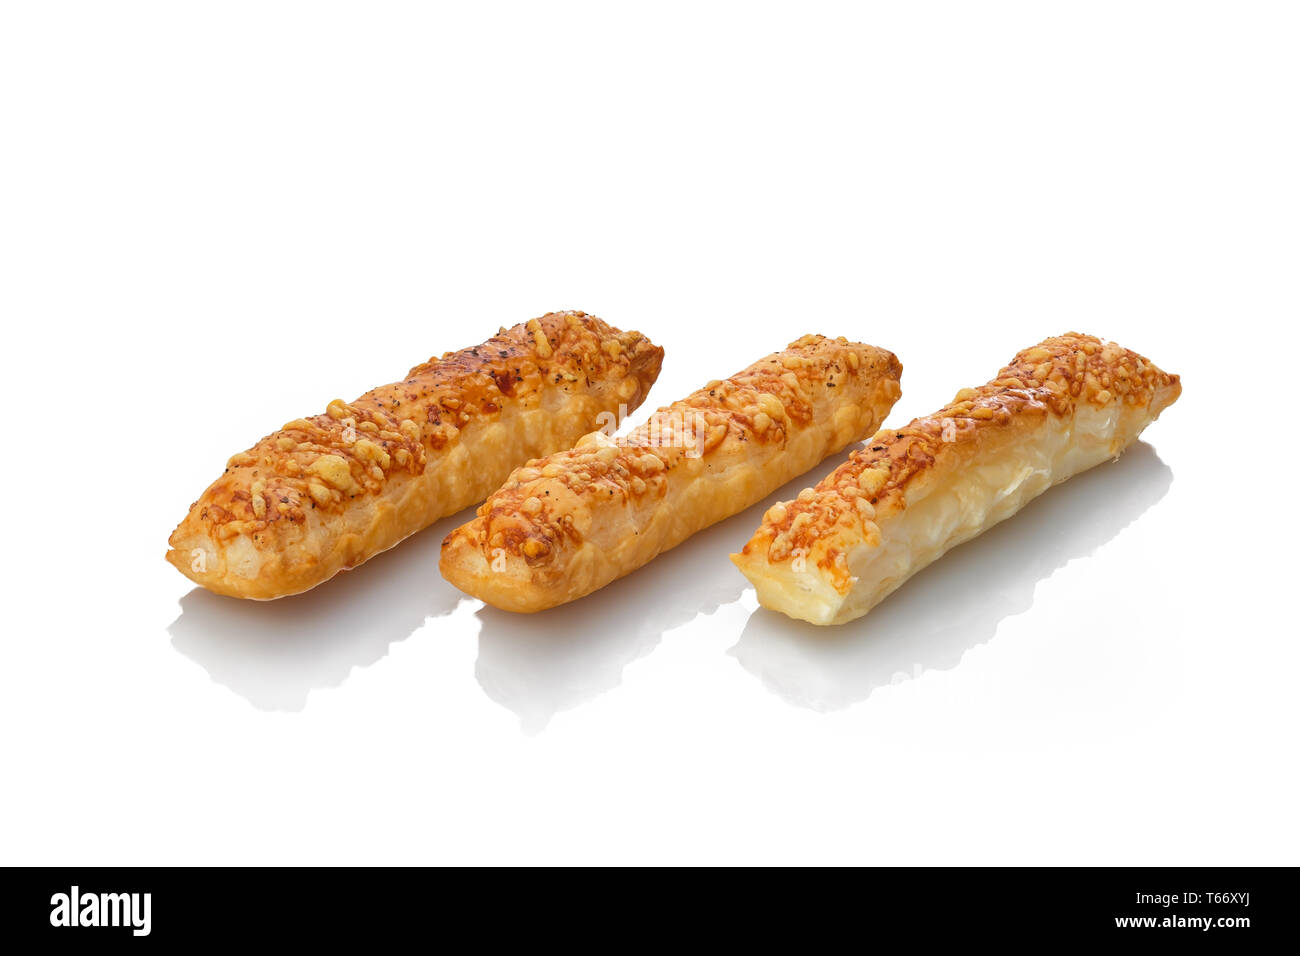 Puff pastry sticks backed with cheese white isolated - Stock Image